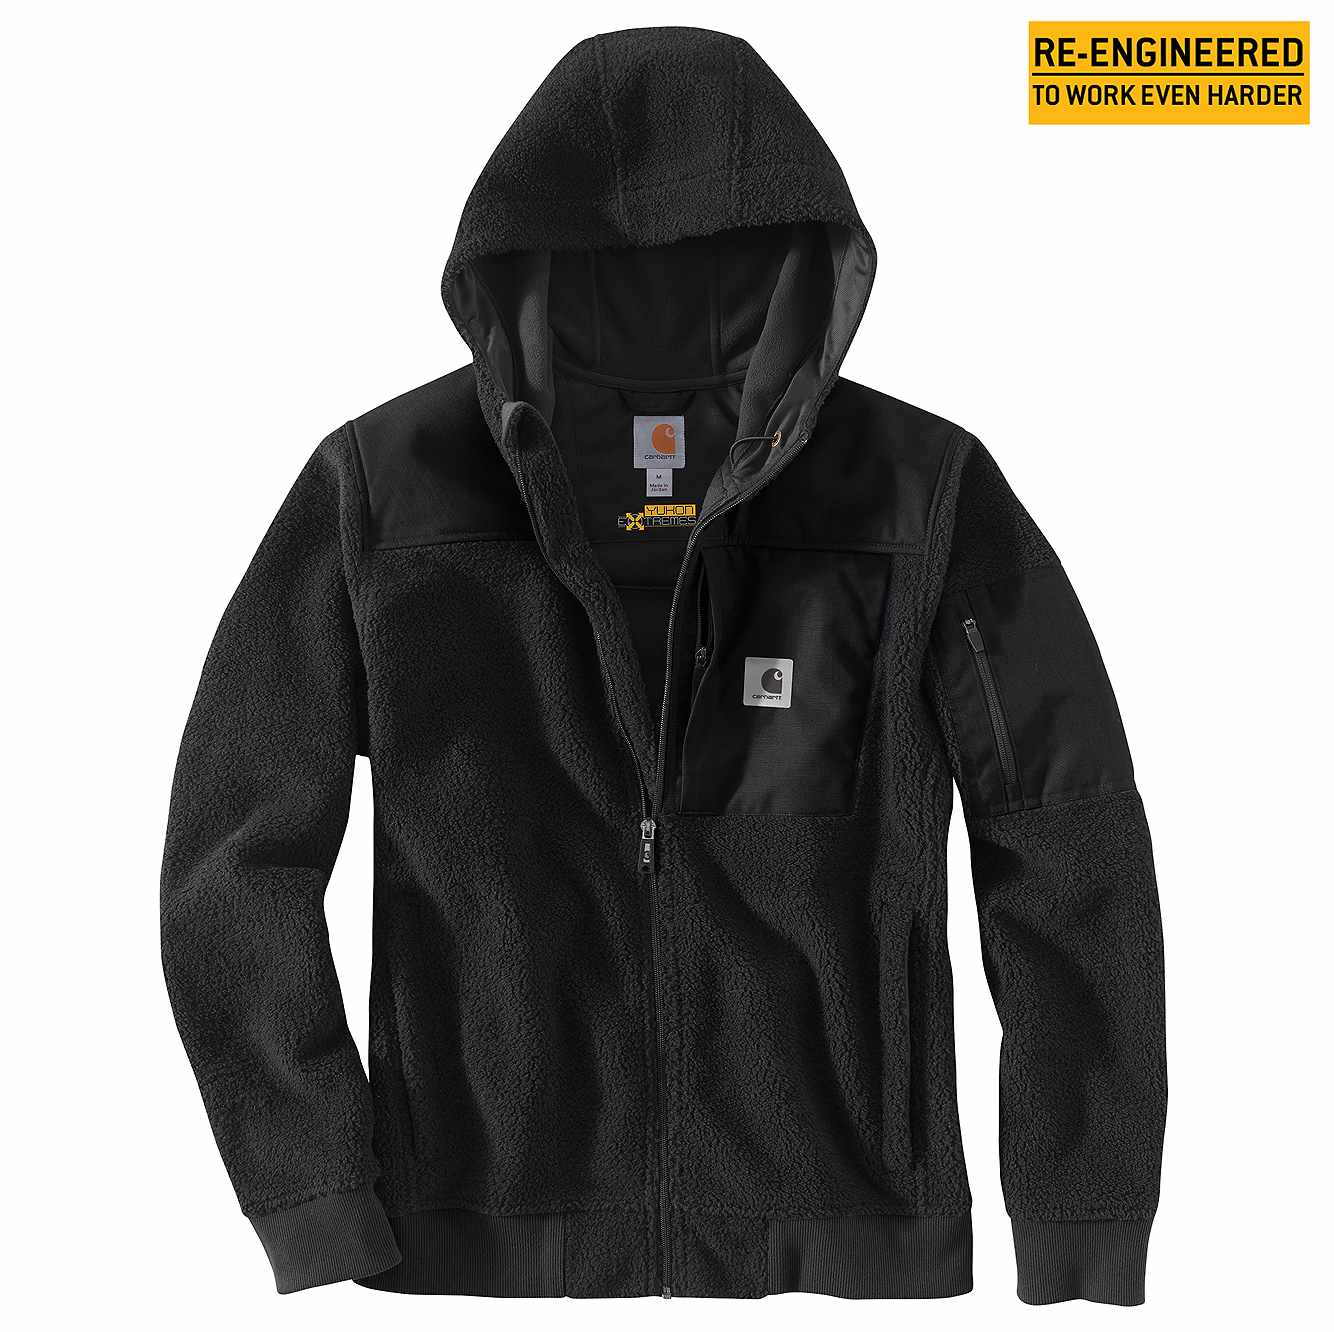 Picture of Carhartt® Yukon Extremes® Wind Fighter® Fleece Active Jac in Black